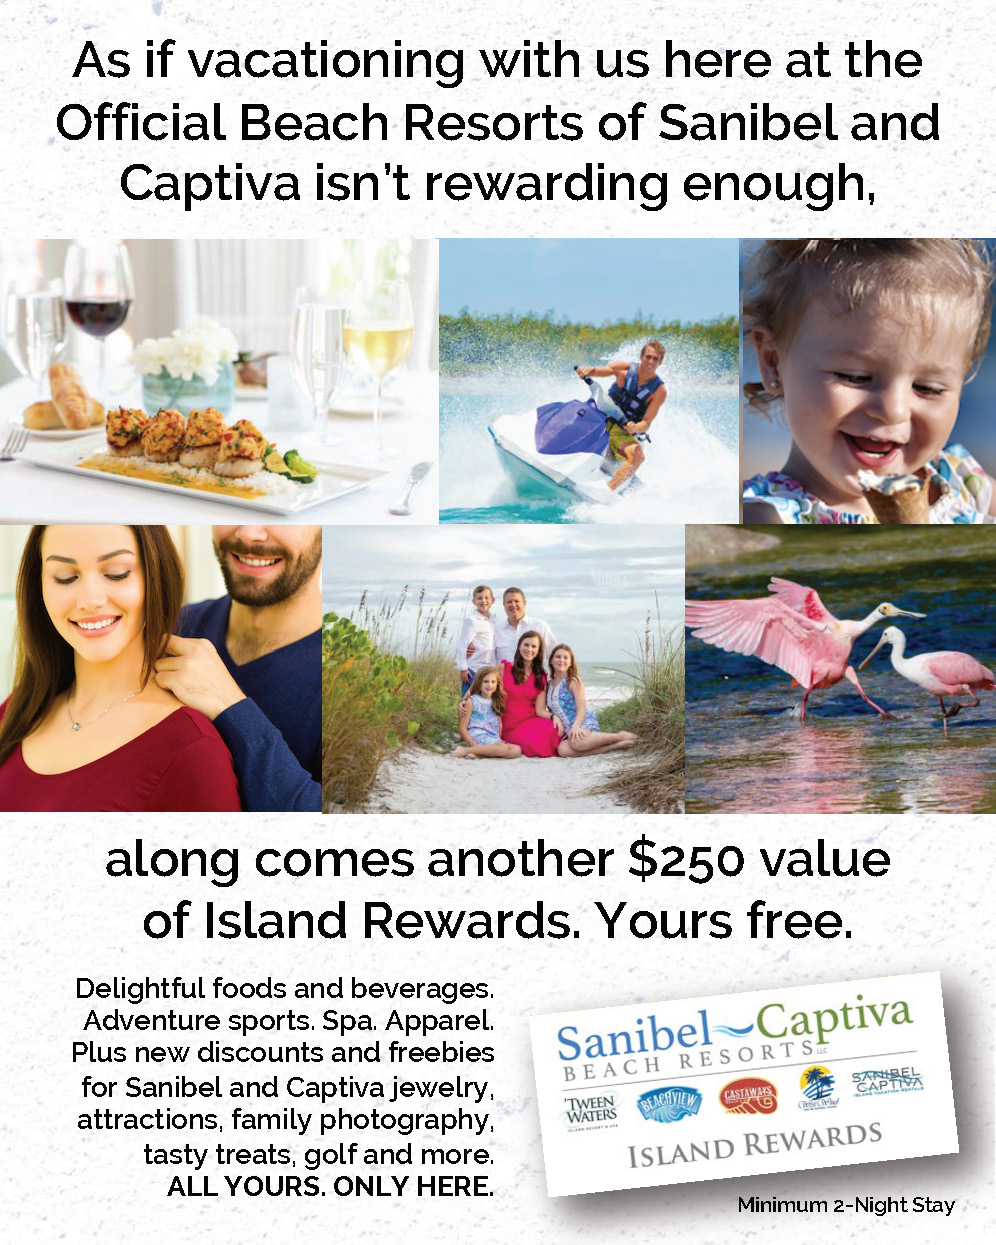 250 more reasons to stay with Sanibel Captiva Beach Resorts — our new $250 value Island Rewards